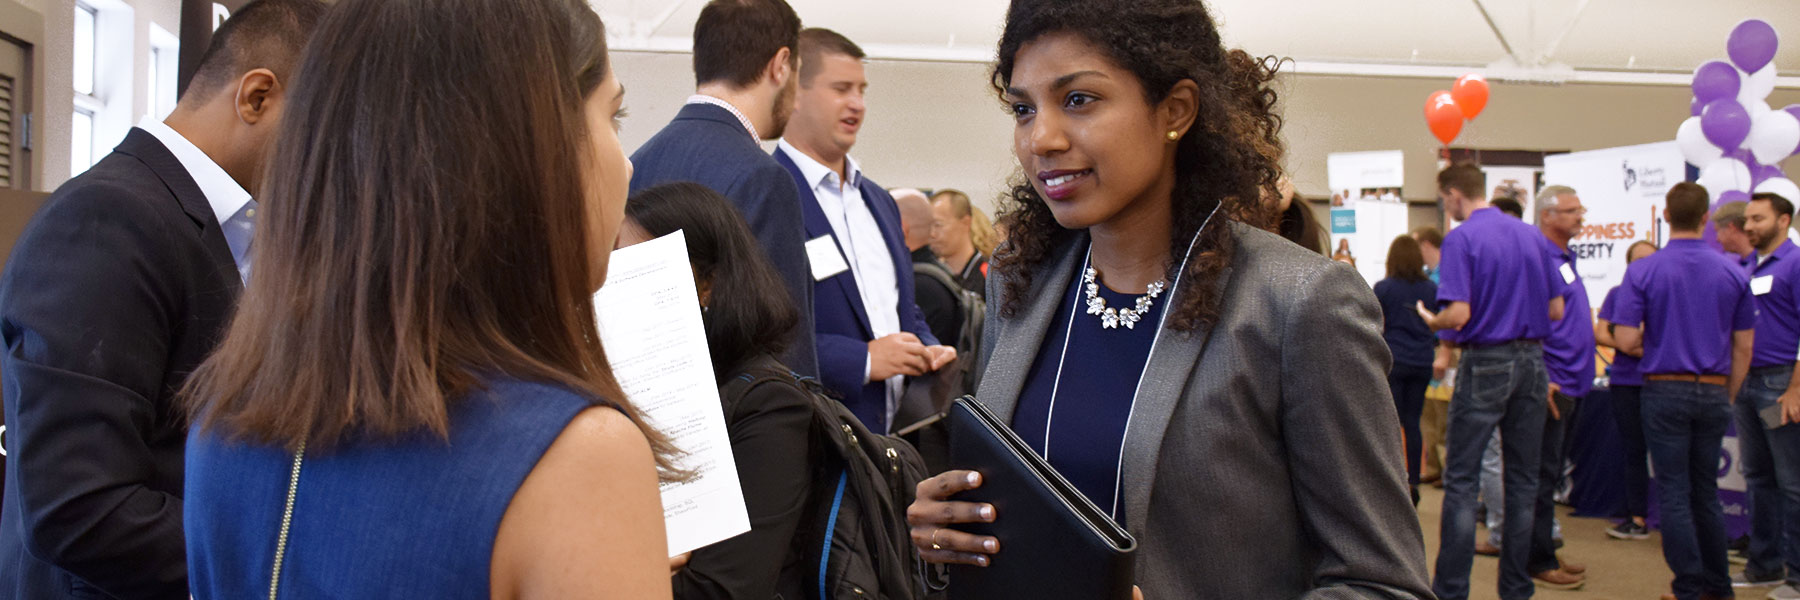 A student holds a portfolio and speaks with a representative at a career fair.